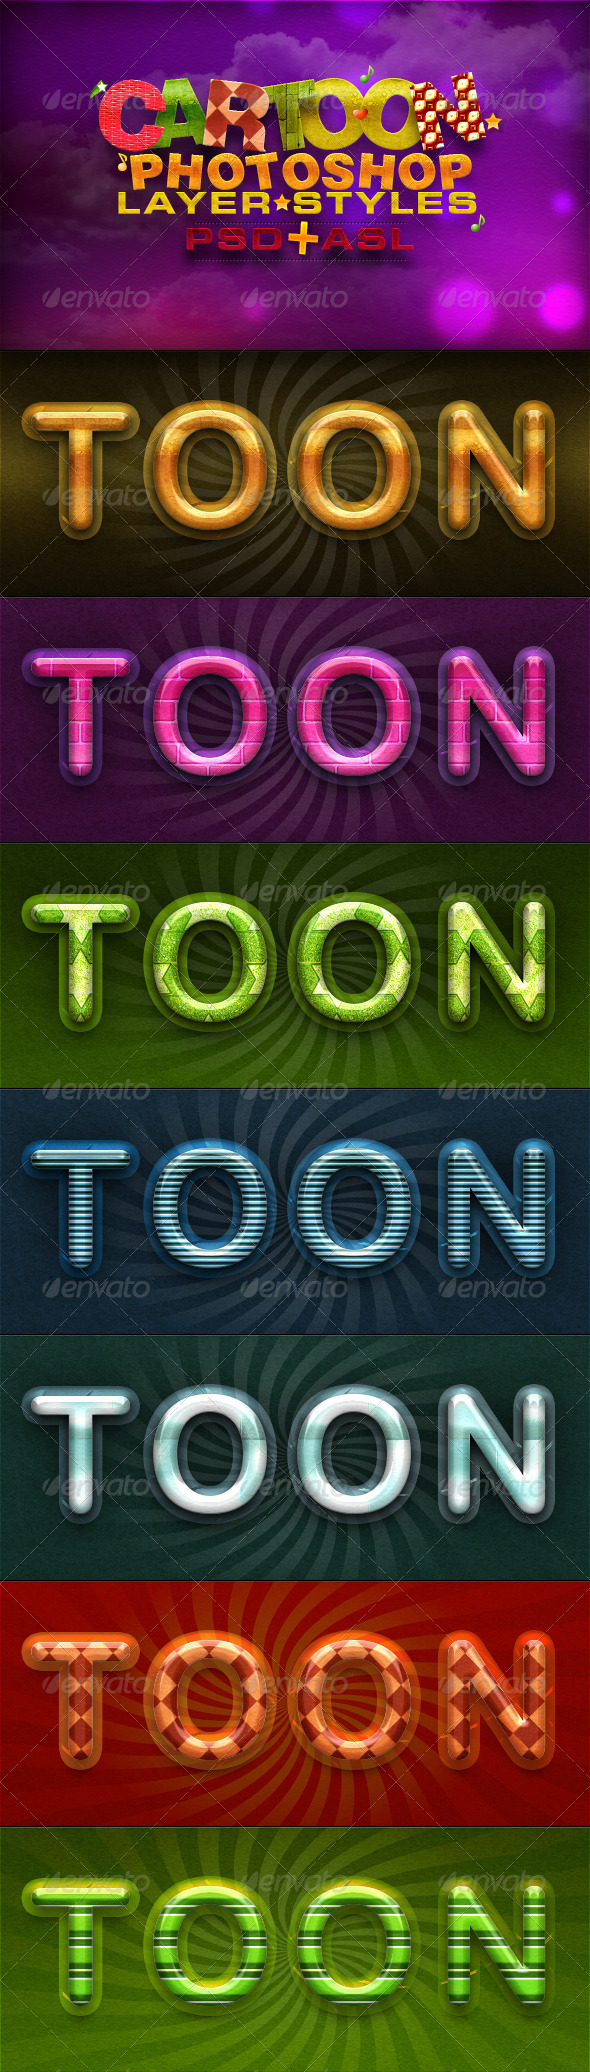 GraphicRiver Cartoon Layer Styles 5001737